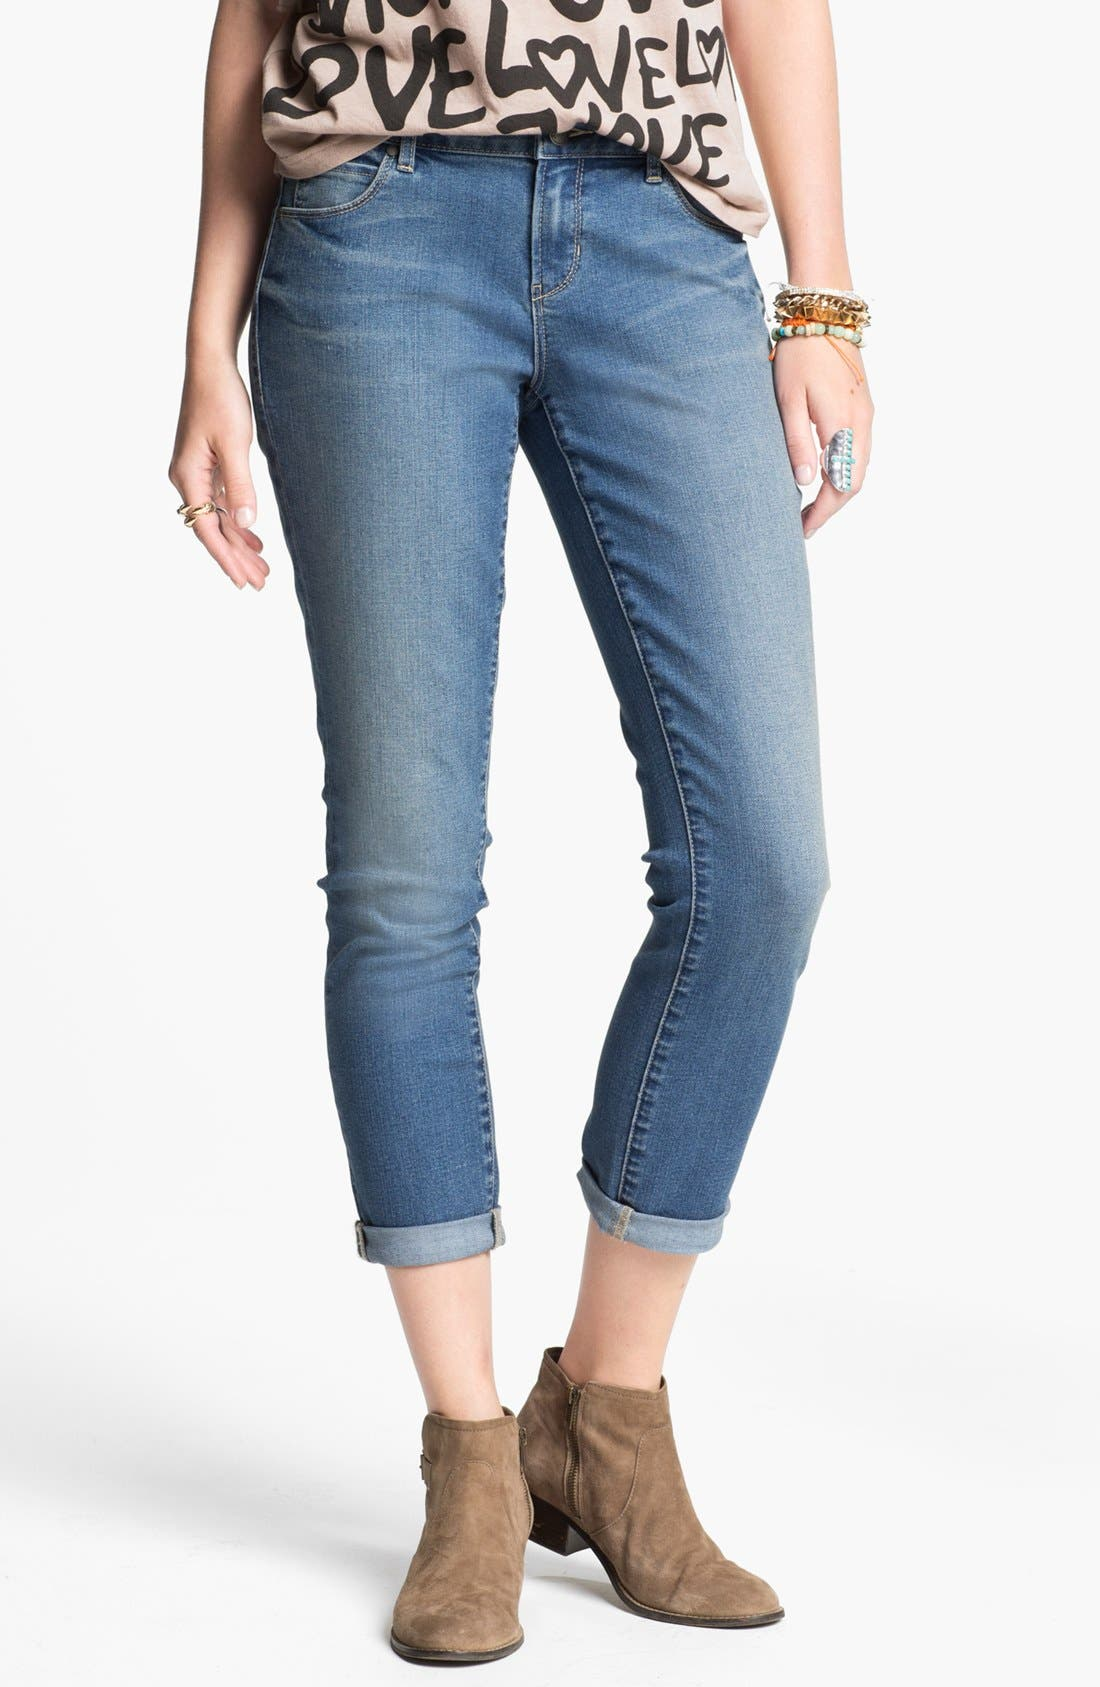 Alternate Image 1 Selected - Articles of Society 'Cindy' Boyfriend Skinny Jeans (Juniors)